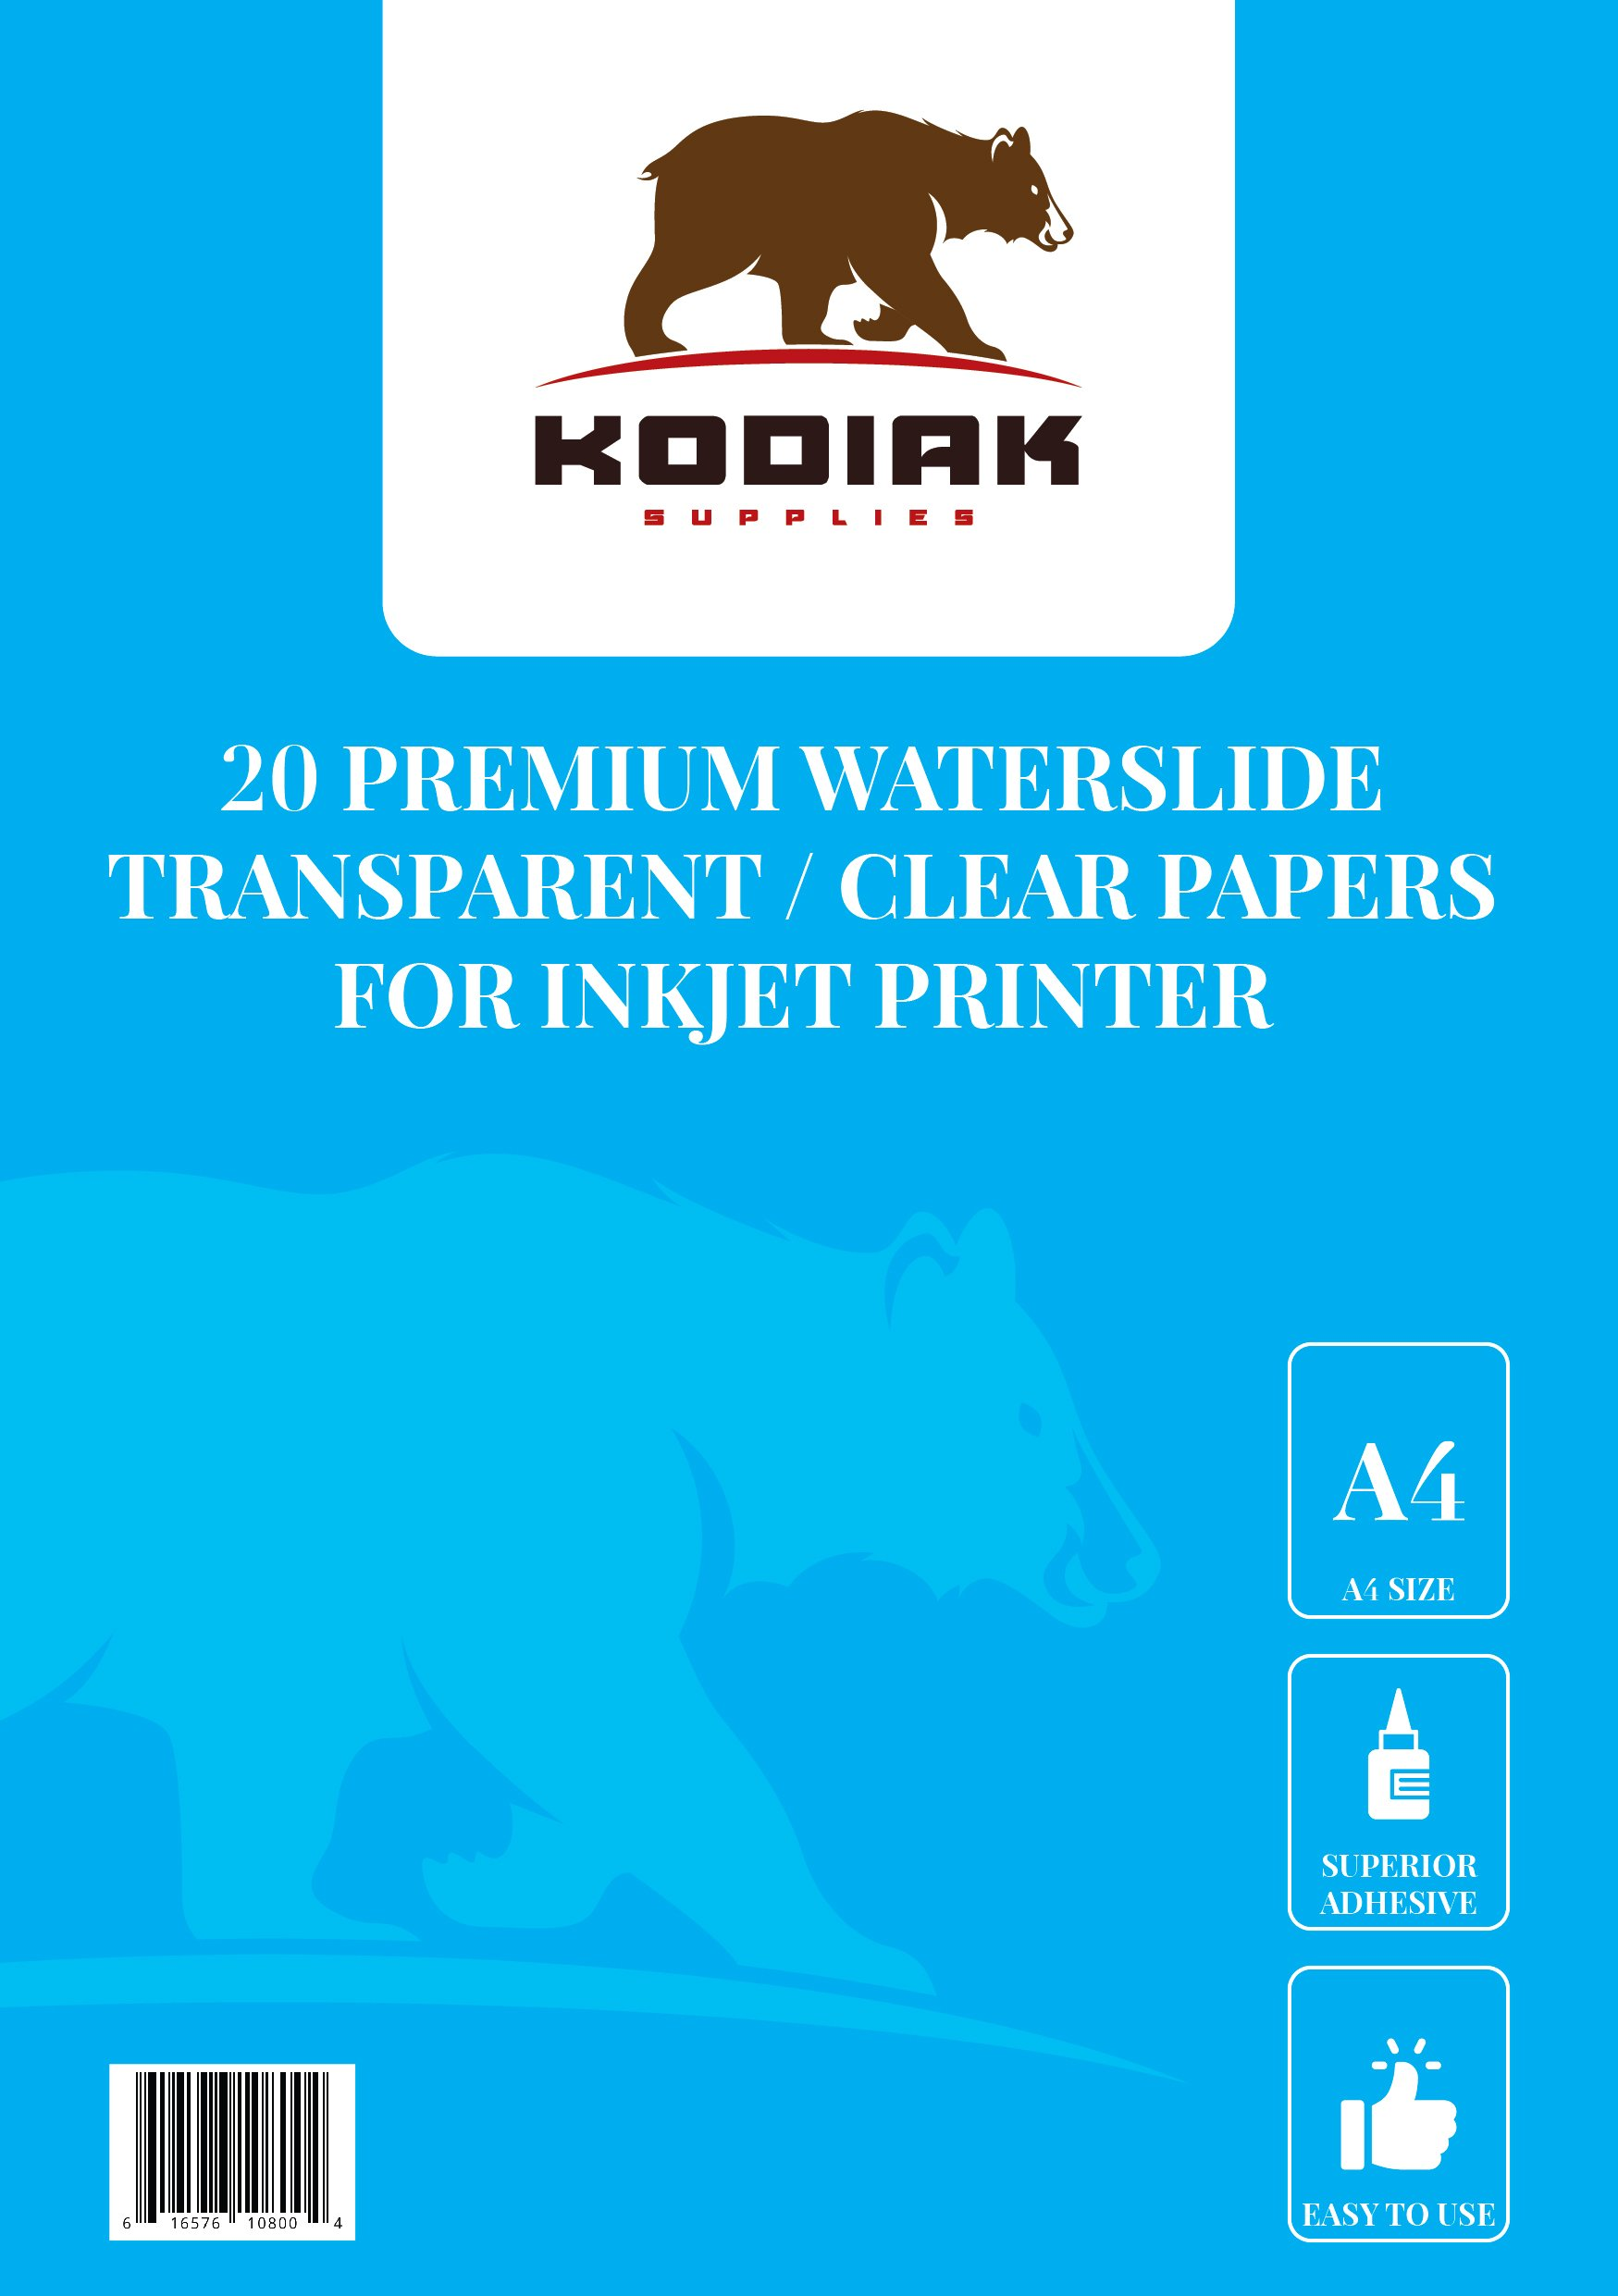 Kodiak Supplies A4 Waterslide Decal Paper INKJET Clear - 20 Sheets - DIY A4 water slide Transfer CLEAR Printable Water Slide Decals A4 20 Sheets